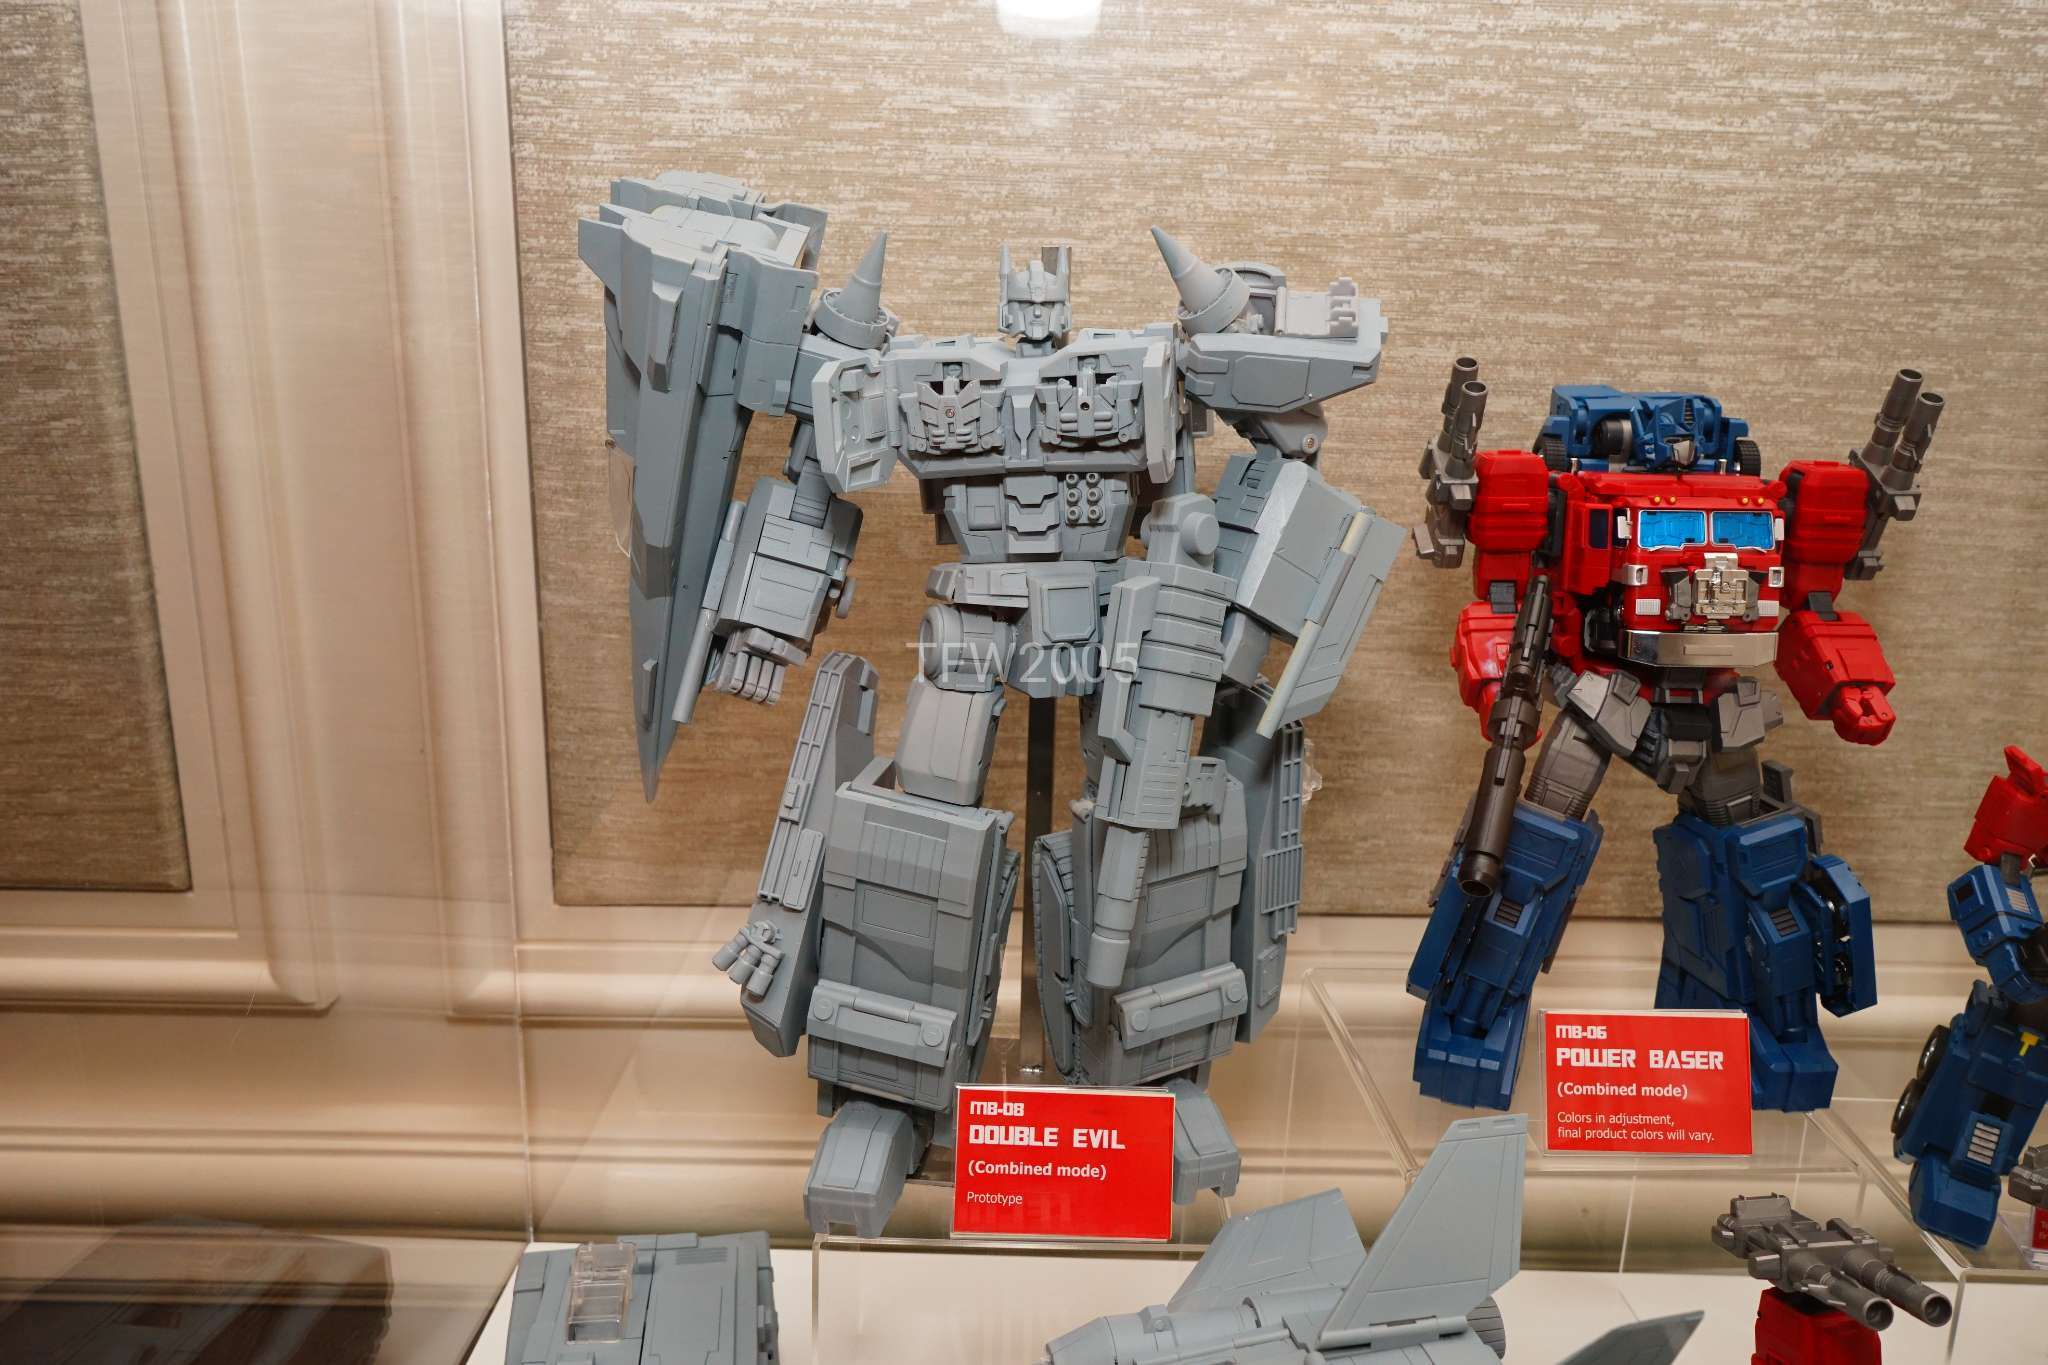 [FansHobby] Produit Tiers - Master Builder MB-08 Double Evil - aka Overlord (TF Masterforce) C5nudohZ_o